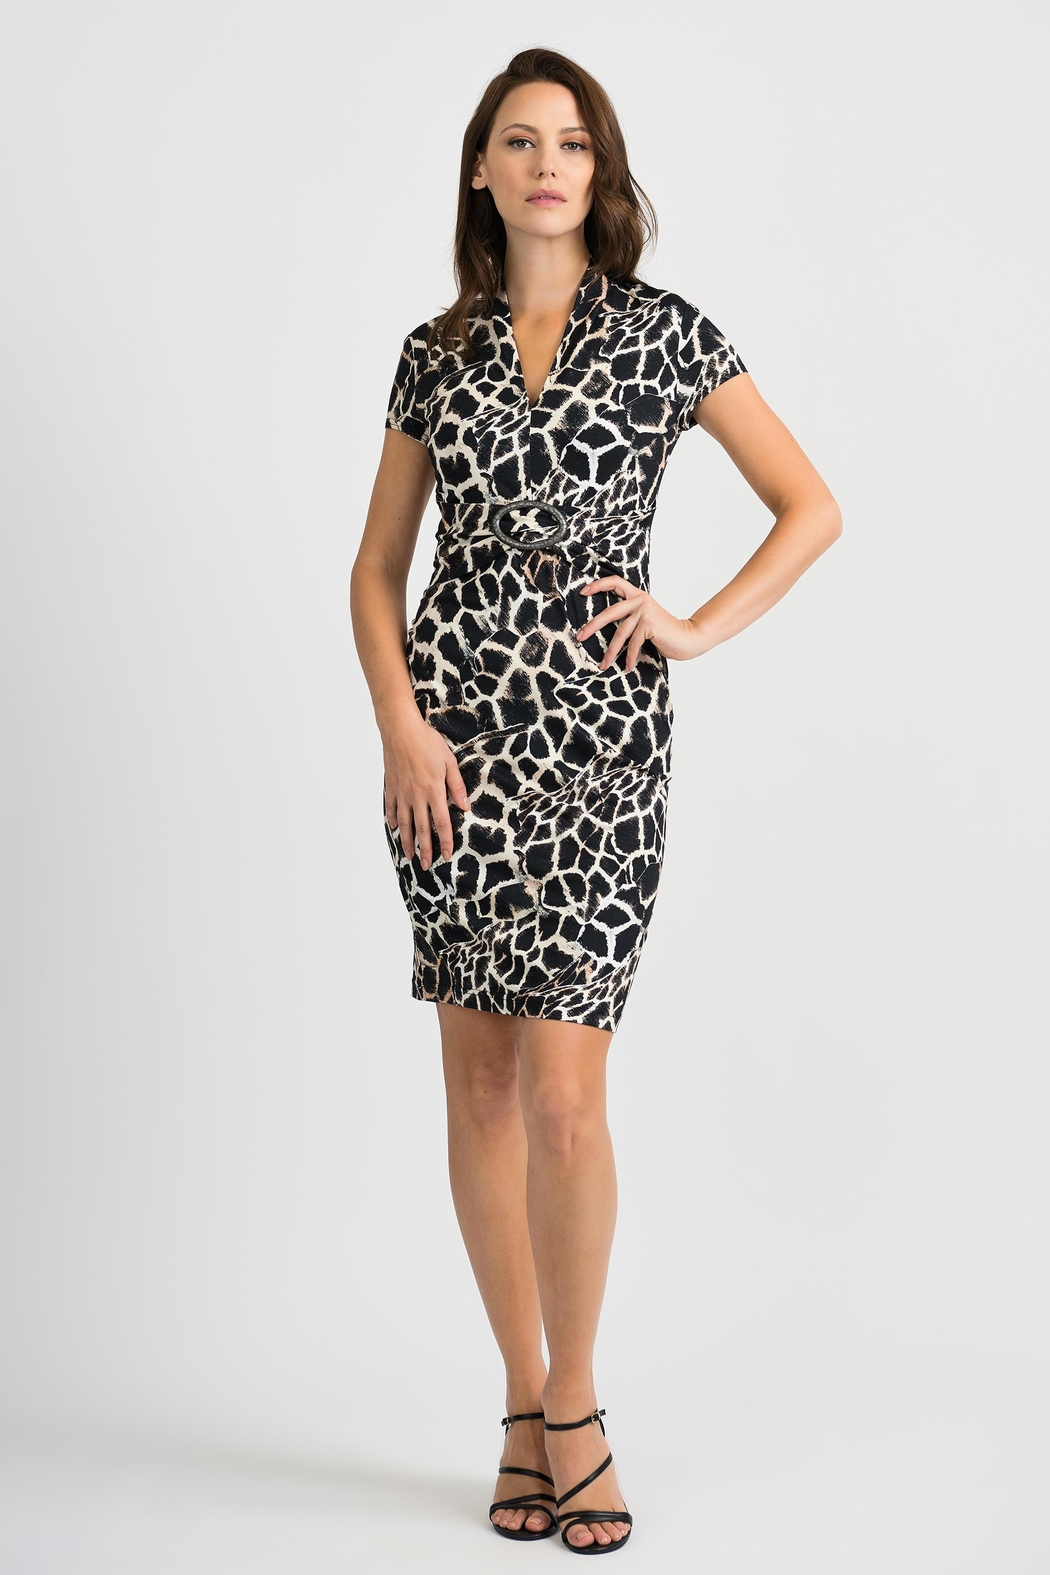 Joseph Ribkoff Giraffe Patterned Dress - Main Image